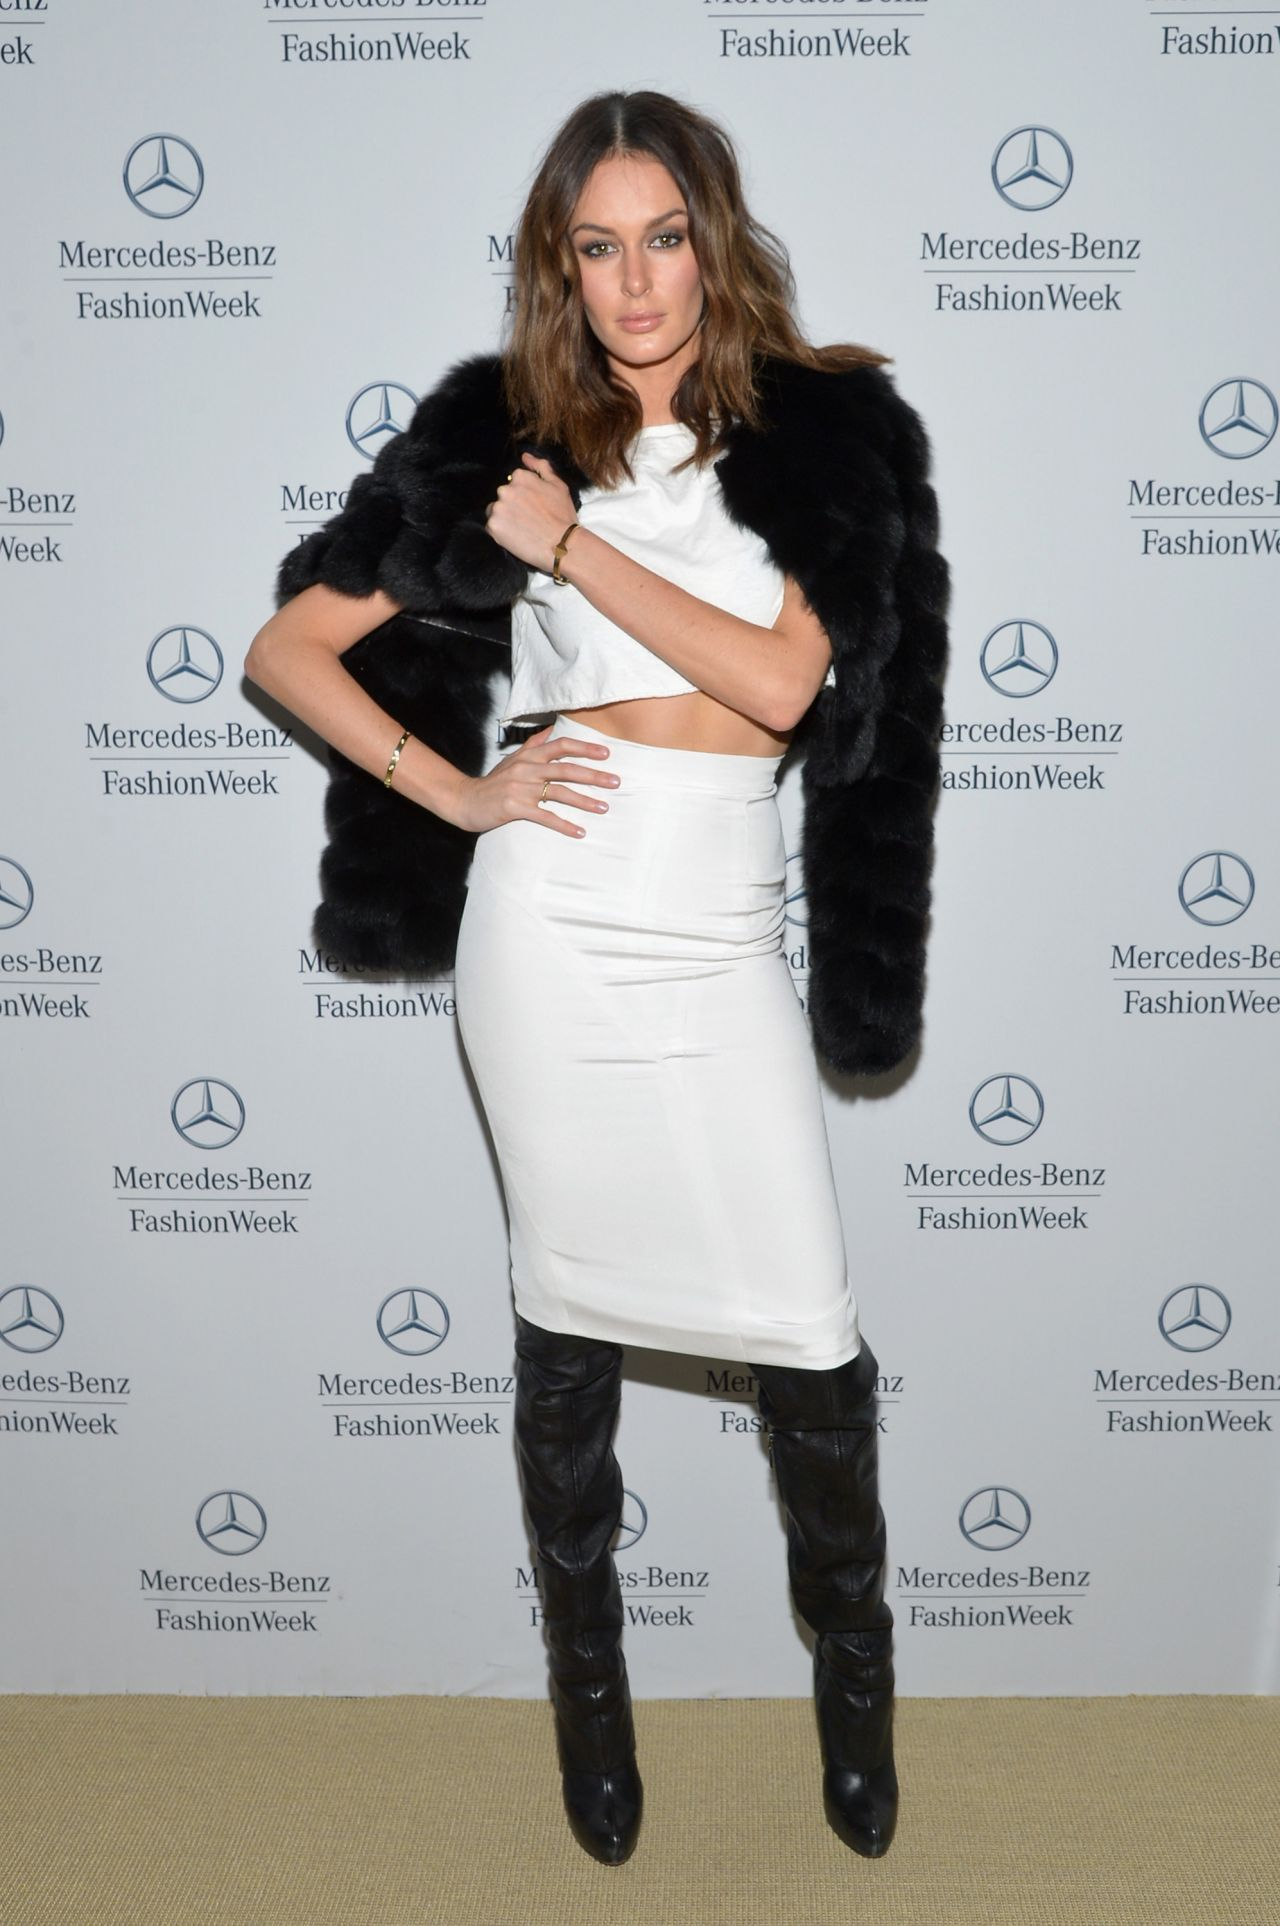 Nicole Trunfio - Mathieu Mirano Fashion Show in New York City - February 2014